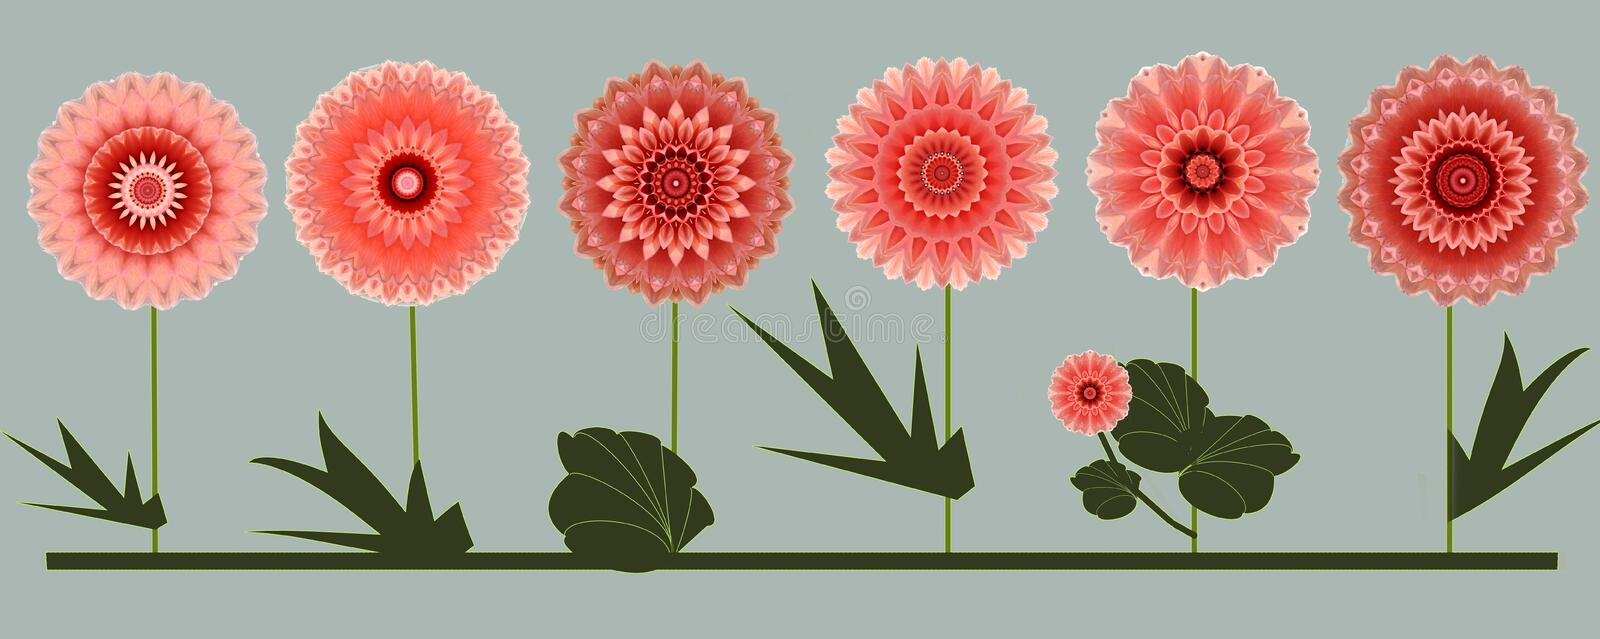 Border of six rose summer flowers digital art design. Greetings card or wrapping paper with a border of six rose digital art design flowers on grey stock illustration